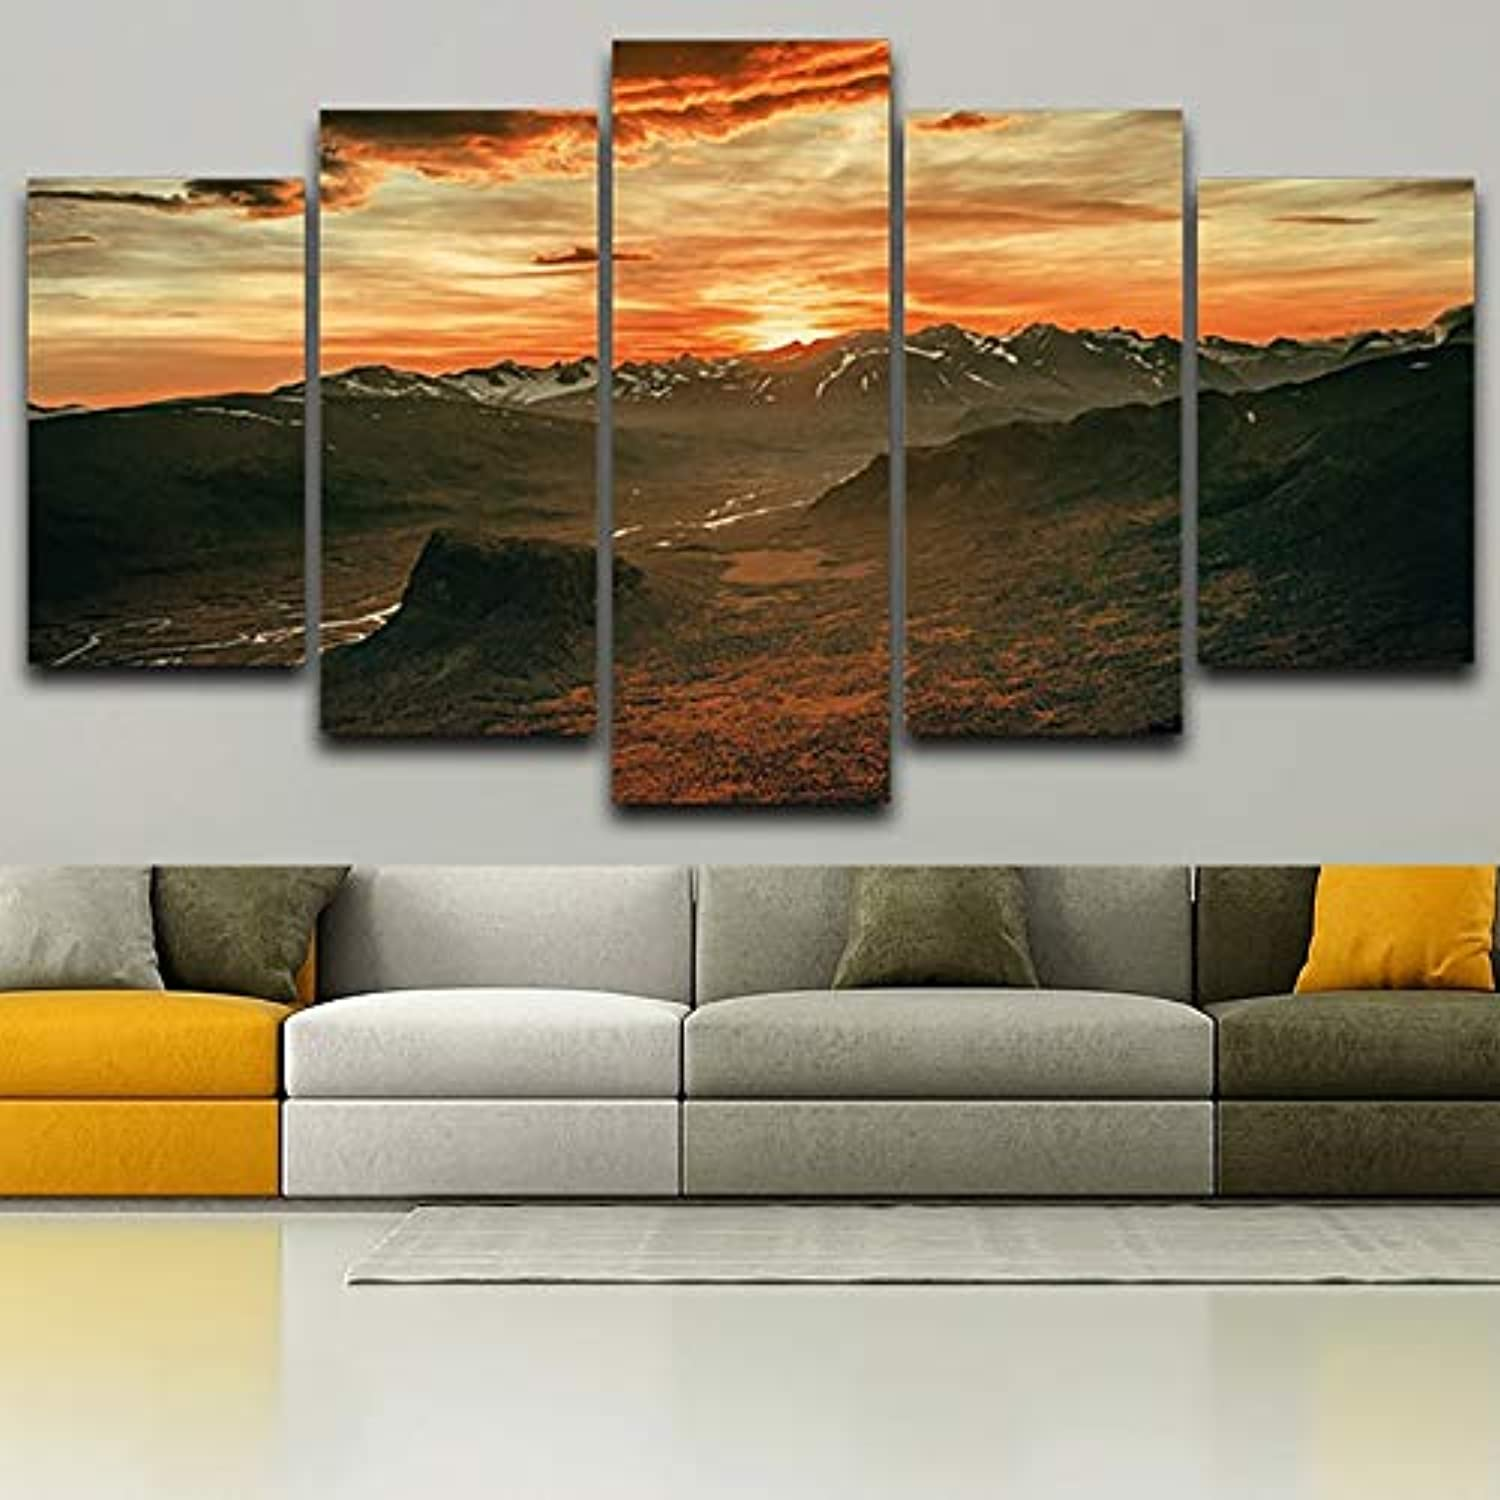 Wall Art Picture Home Decoration HD Printed Posters 5 Panel Mountains Sunset Landscape Modern Framework Living Room Painting